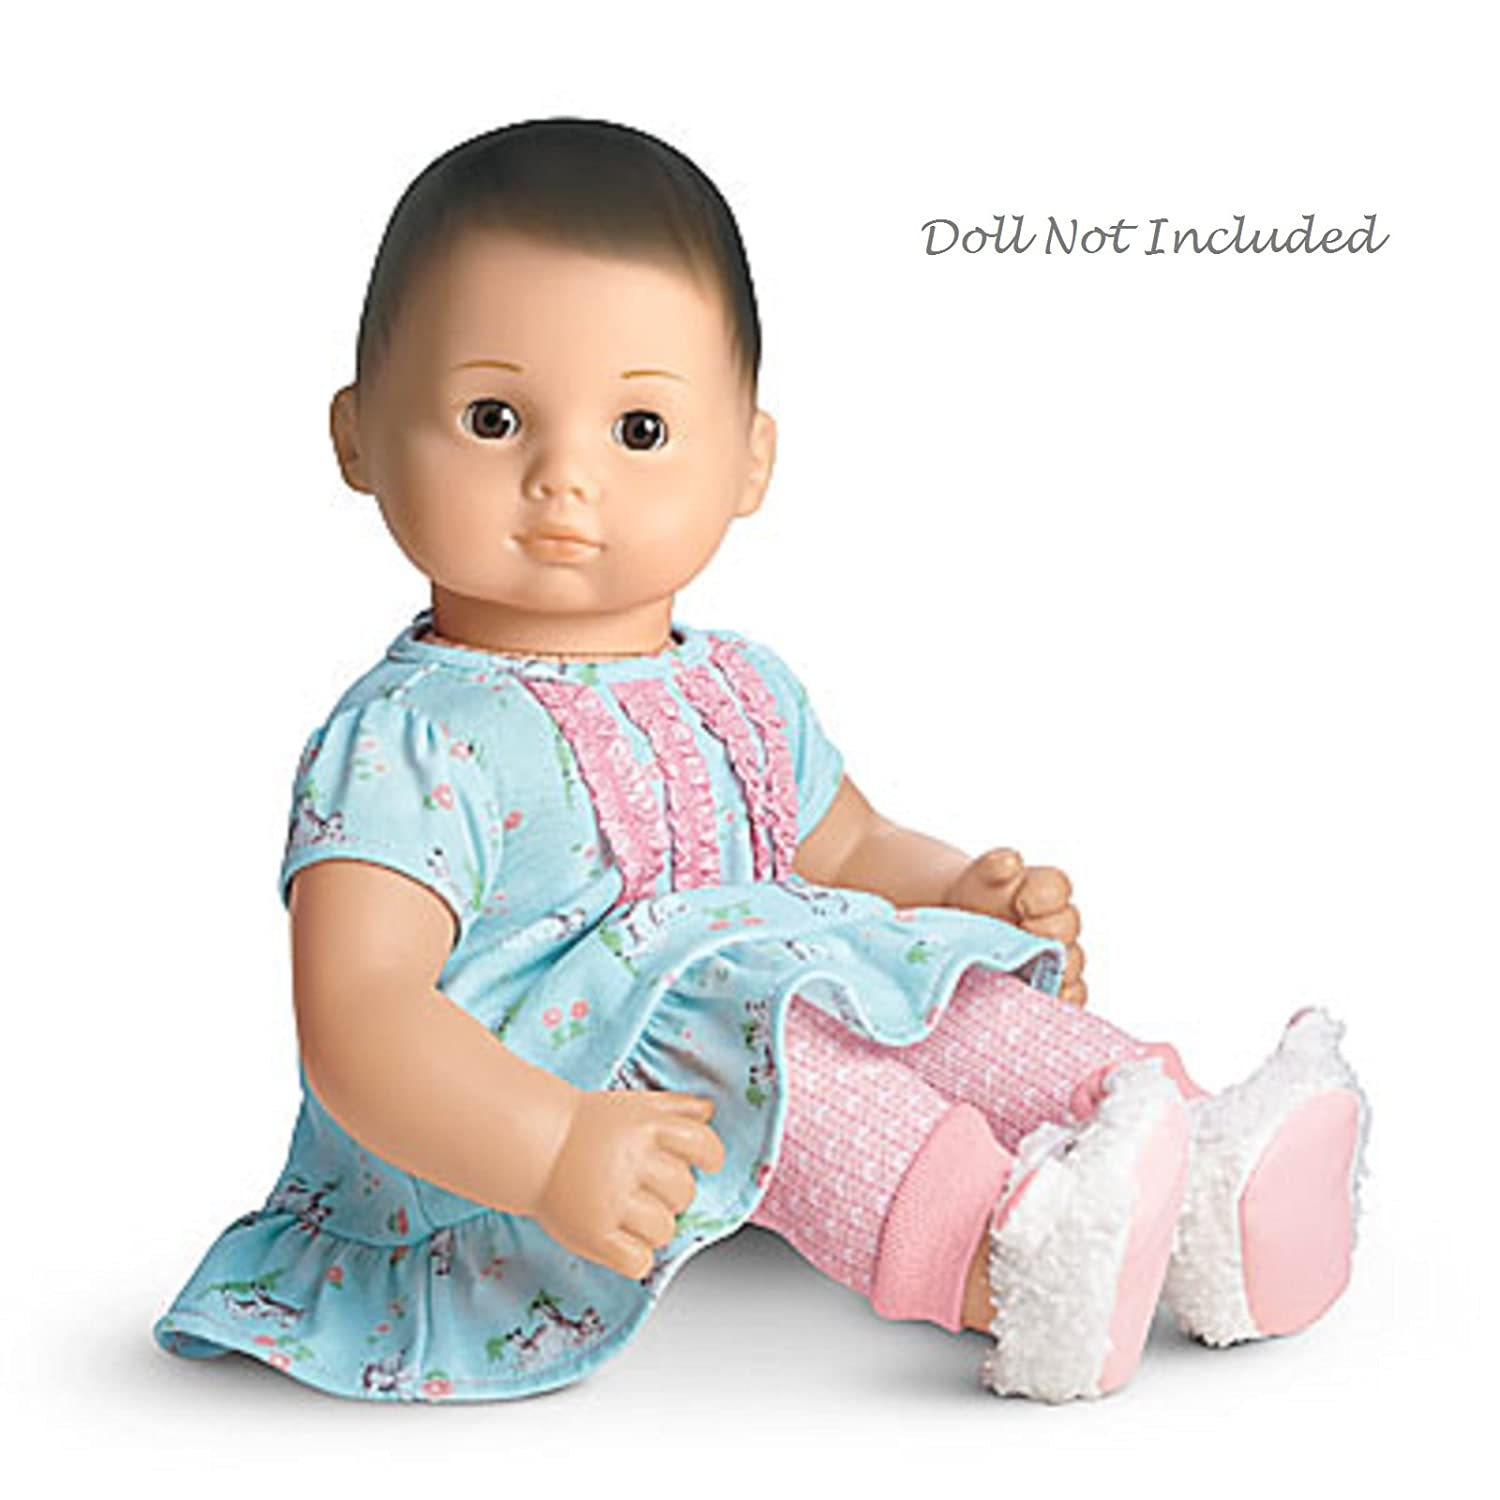 "American Girl Bitty Baby Lambie PJ s for 15"" Dolls Doll Not"